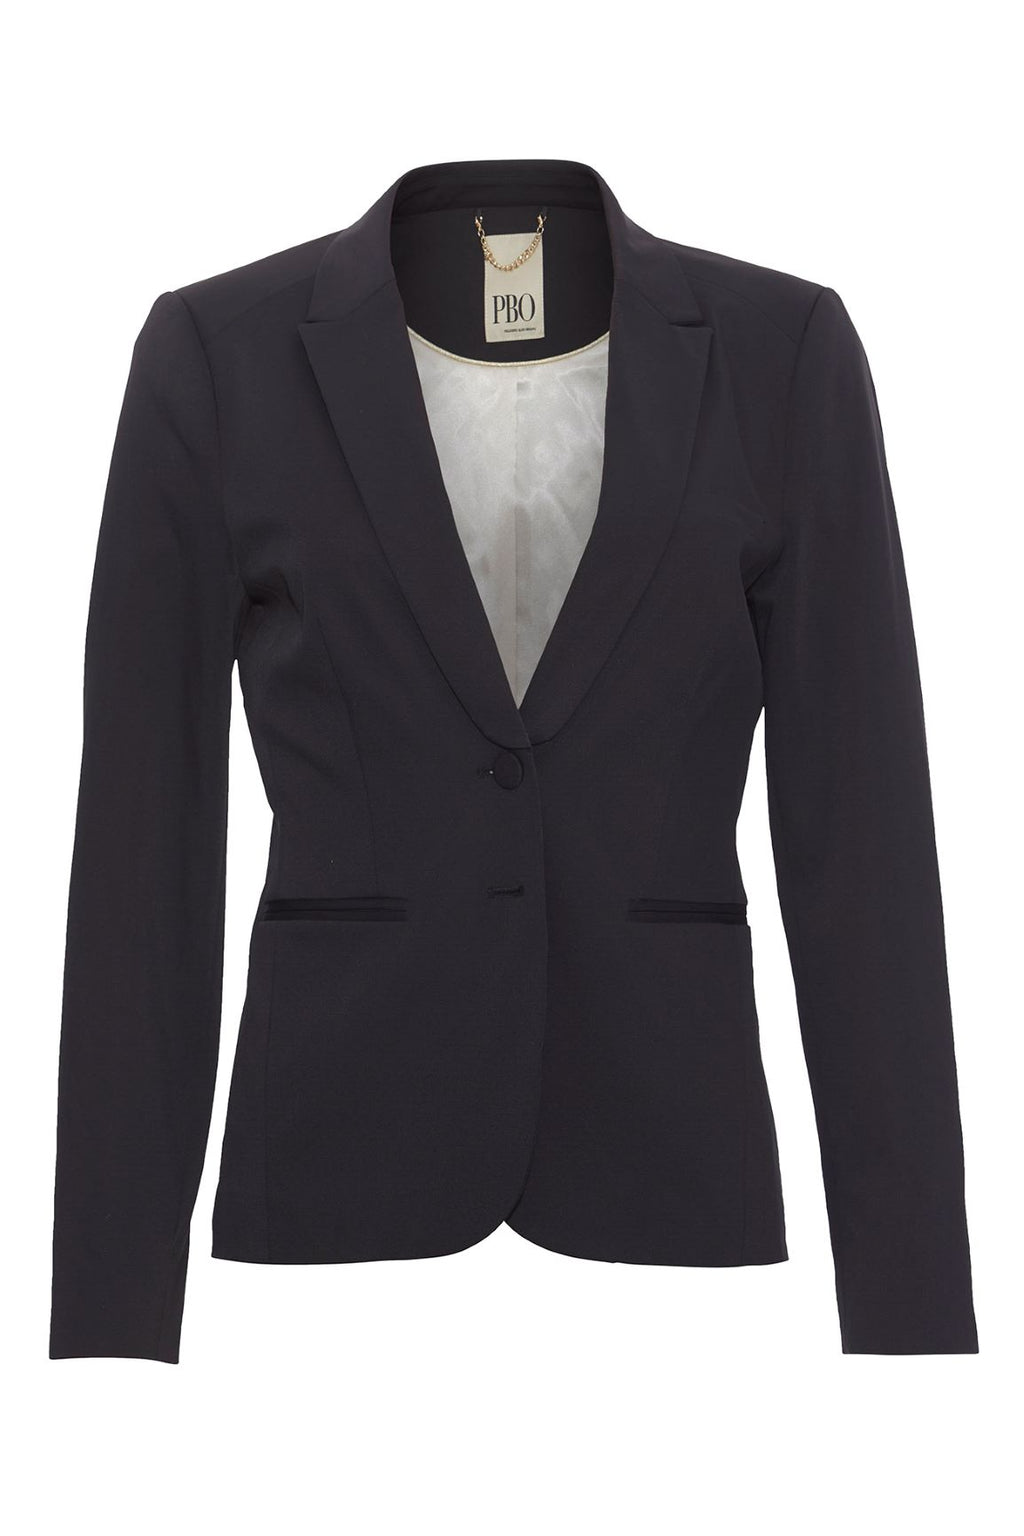 PBO Honor blazer sort 1248 (3964279717967)